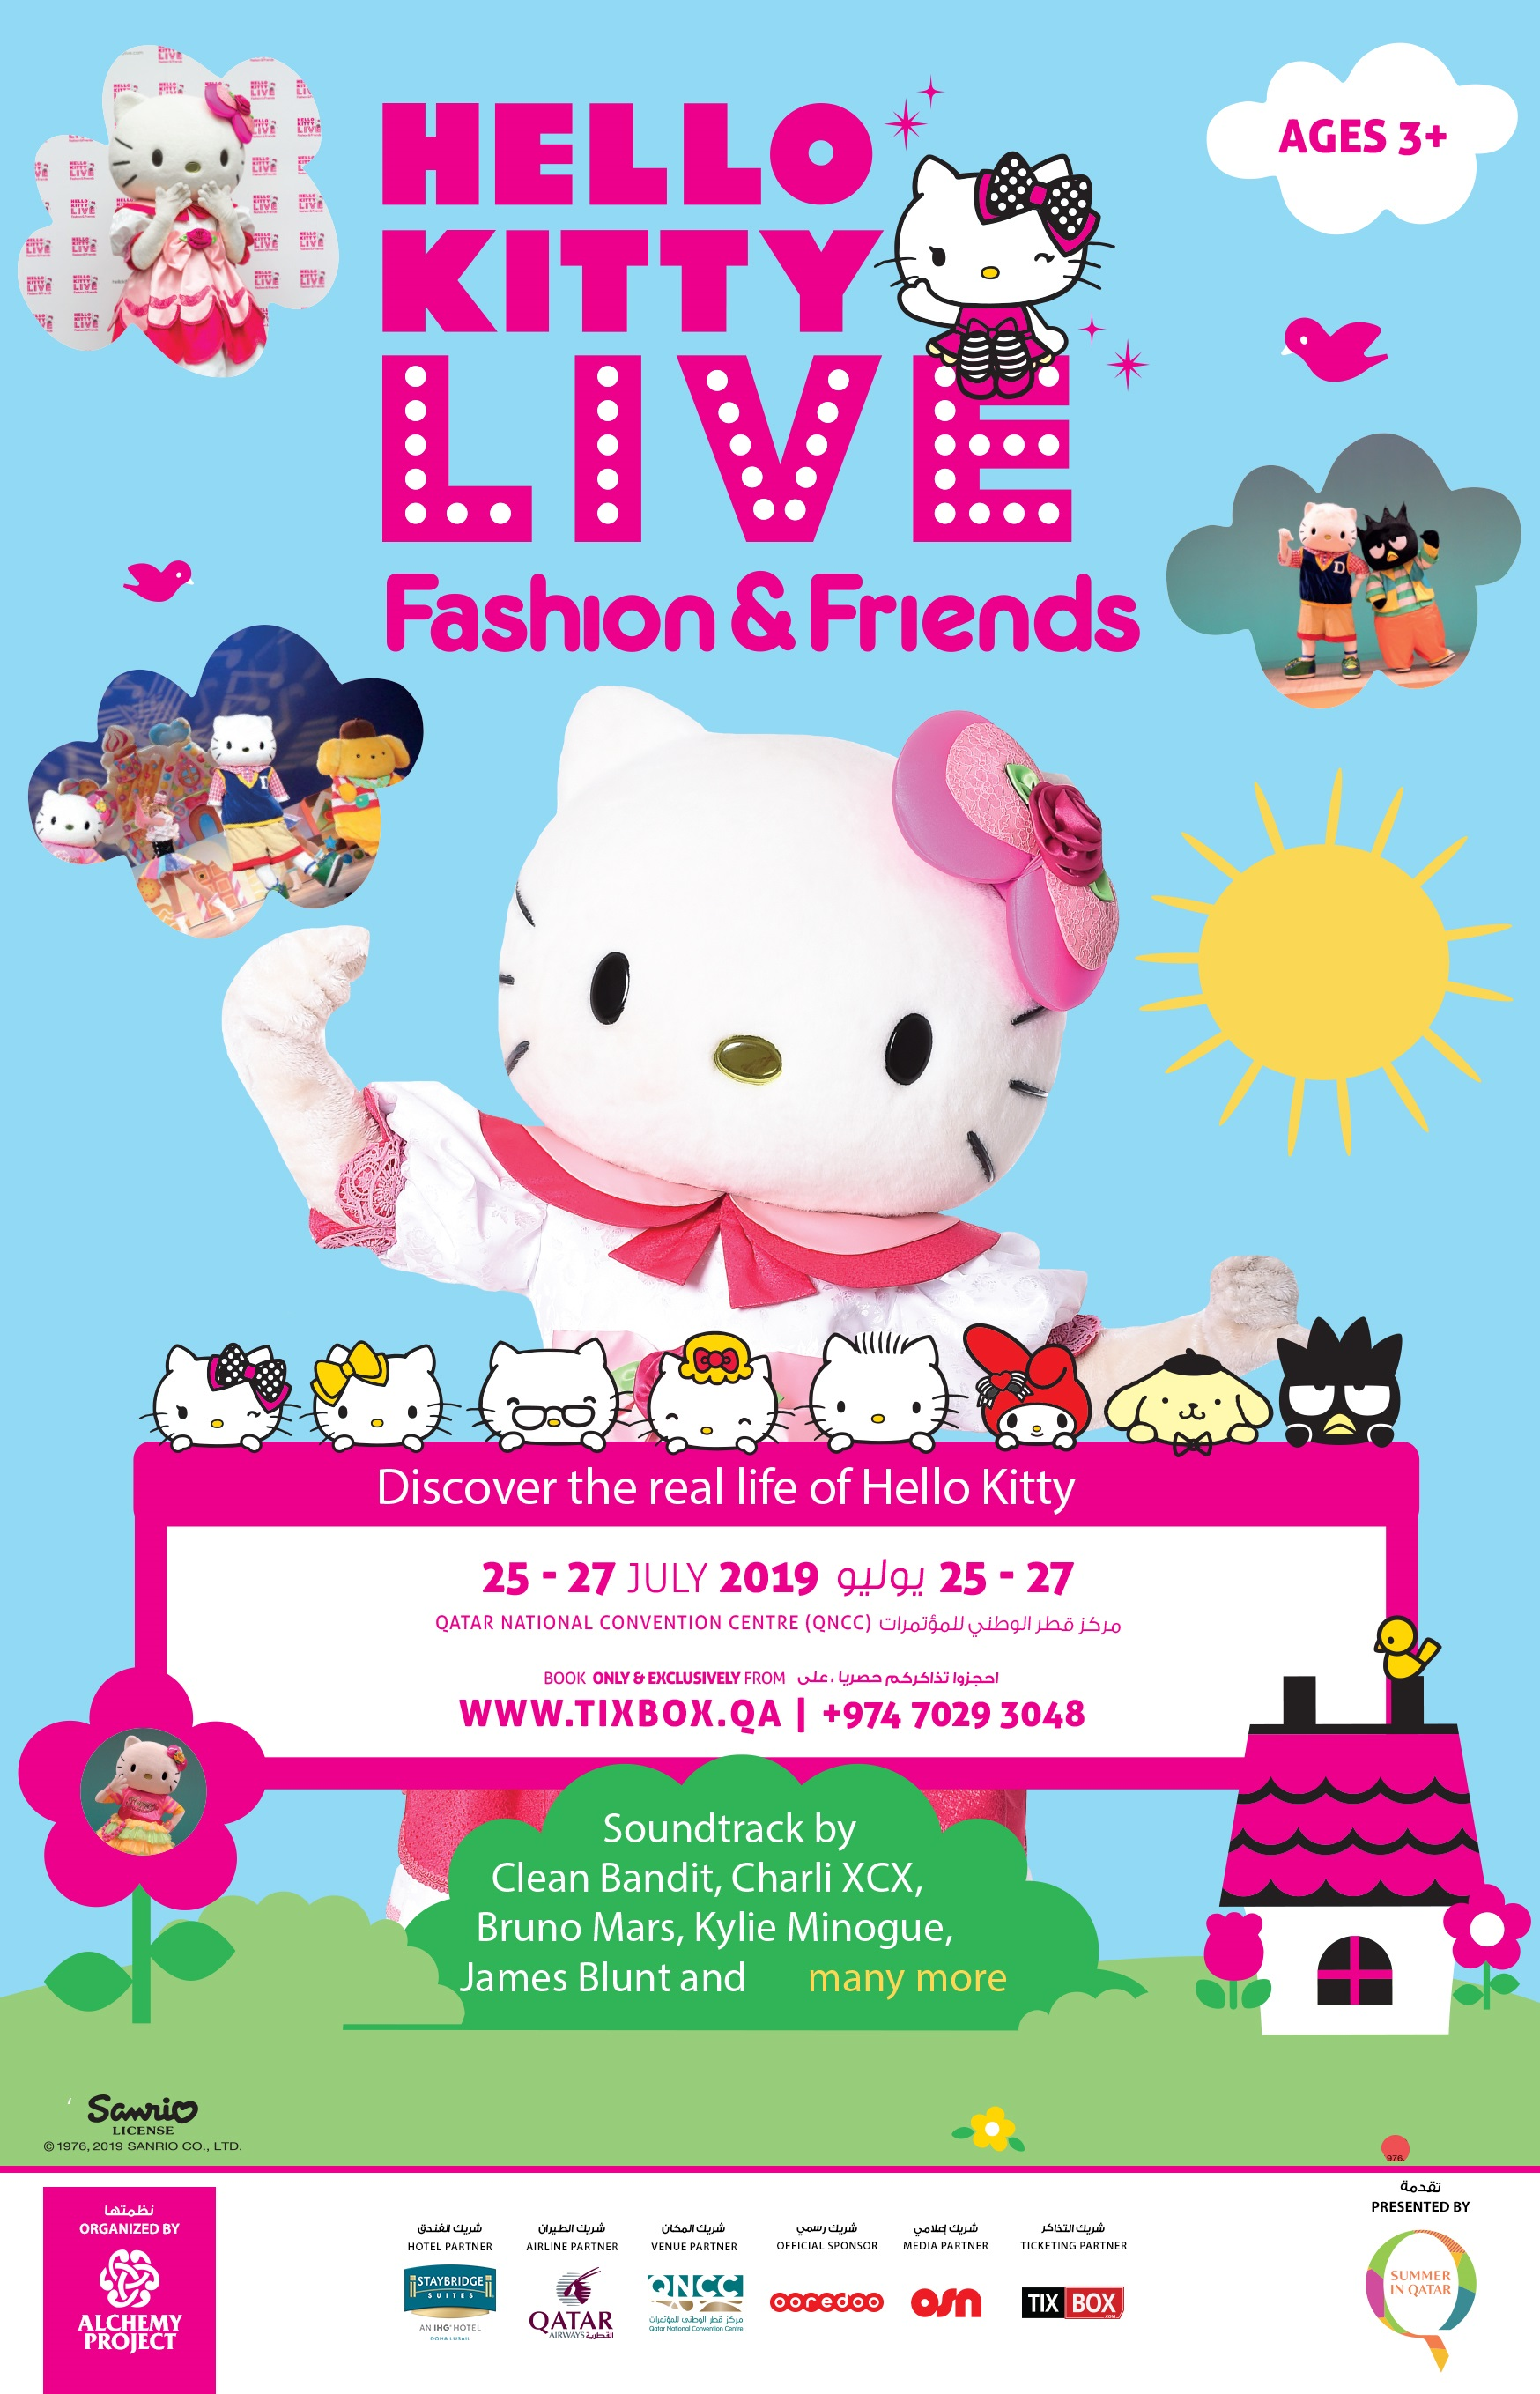 HELLO KITTY LIVE – FASHION & FRIENDS